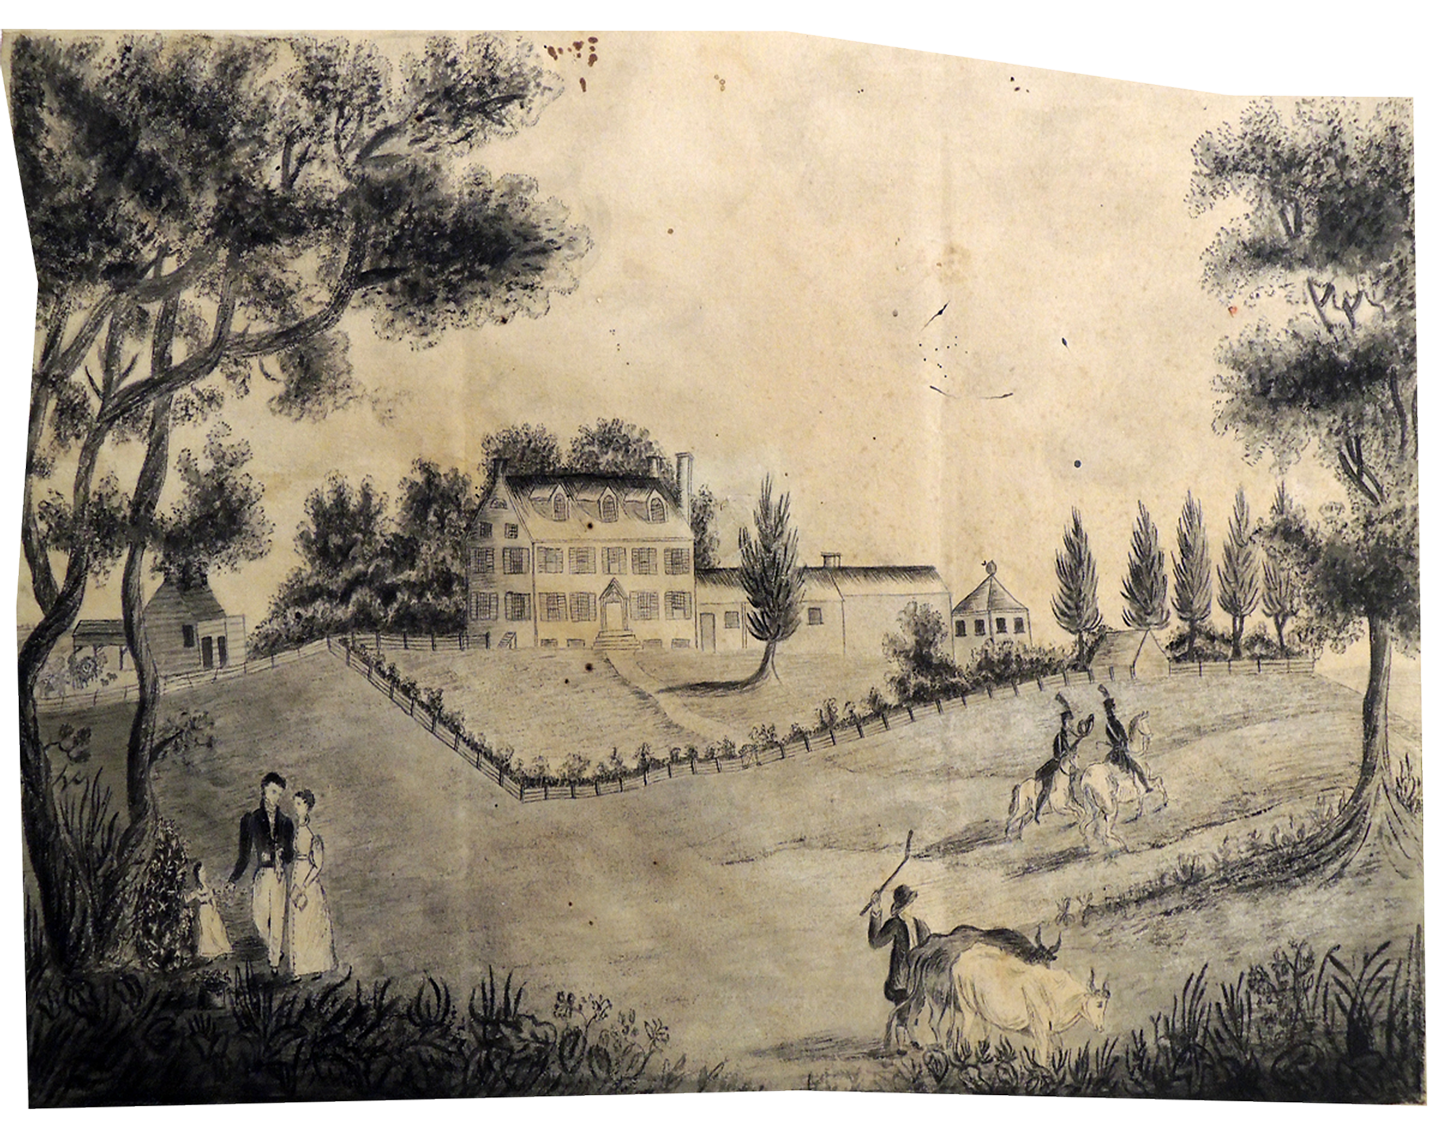 1797 watercolor rendering of Prospect Farm, which later became part of Princeton's campus.